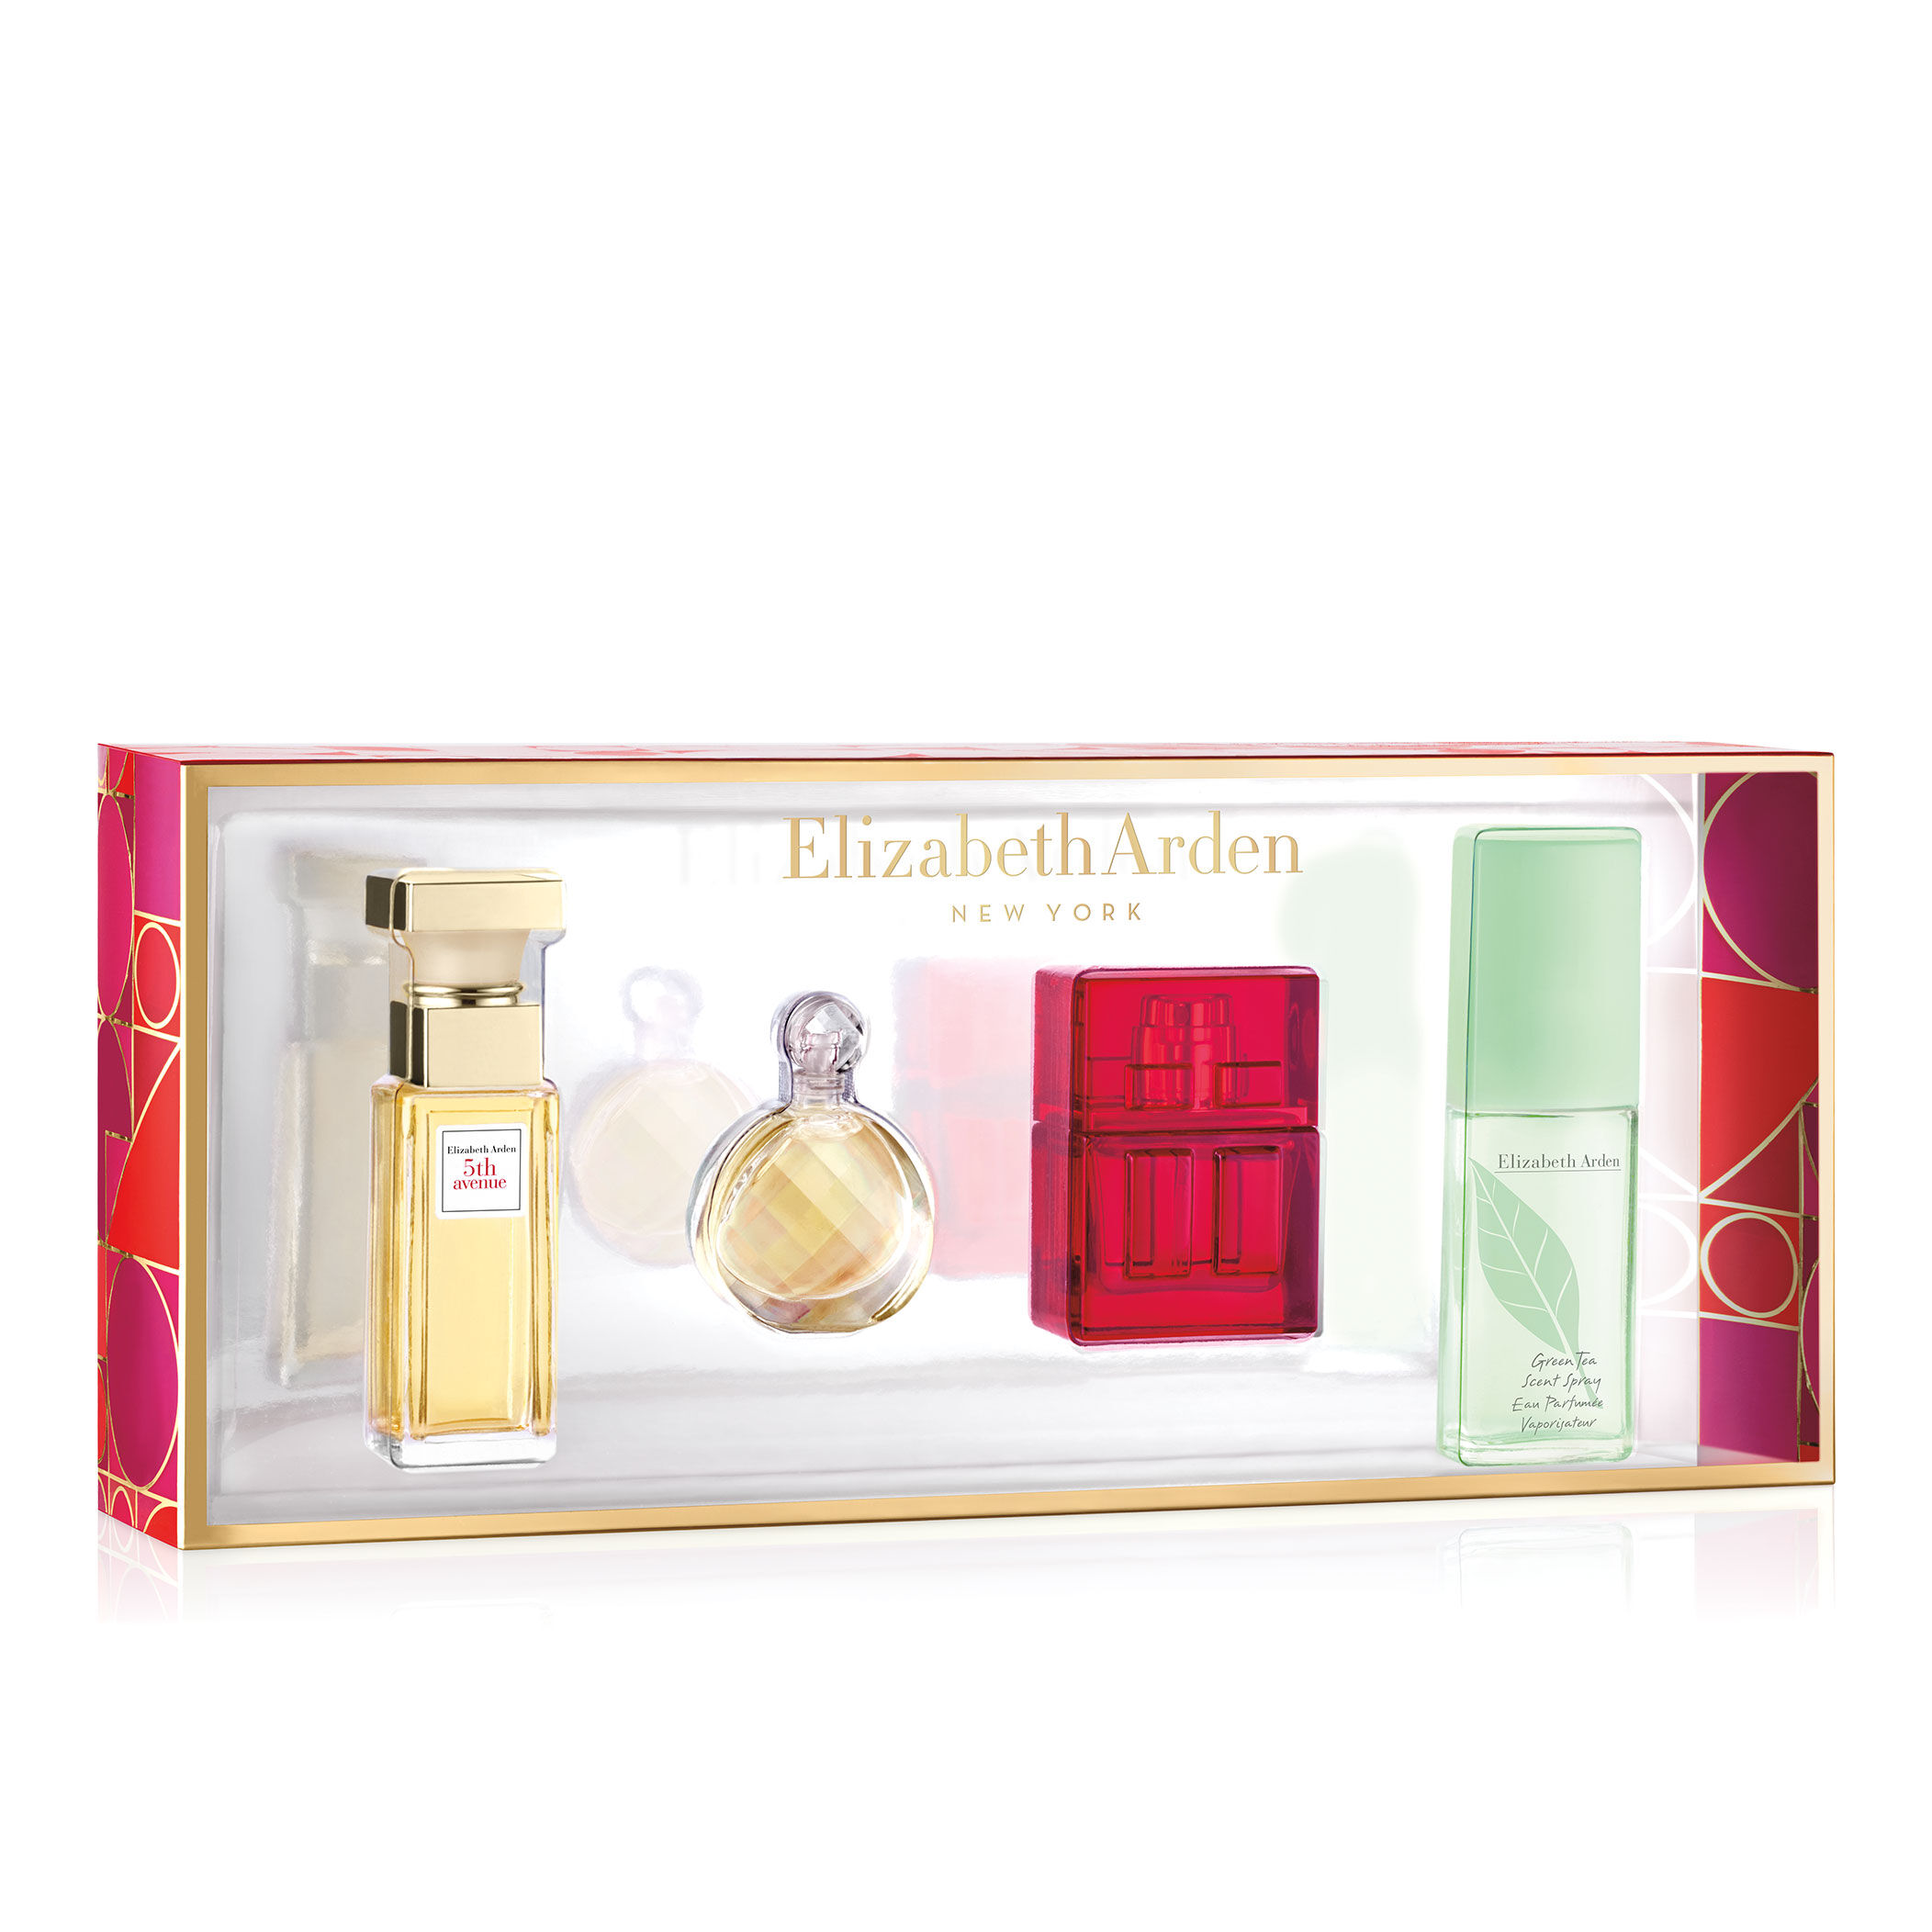 Elizabeth Arden Gift Sets Luxury Makeup Perfume